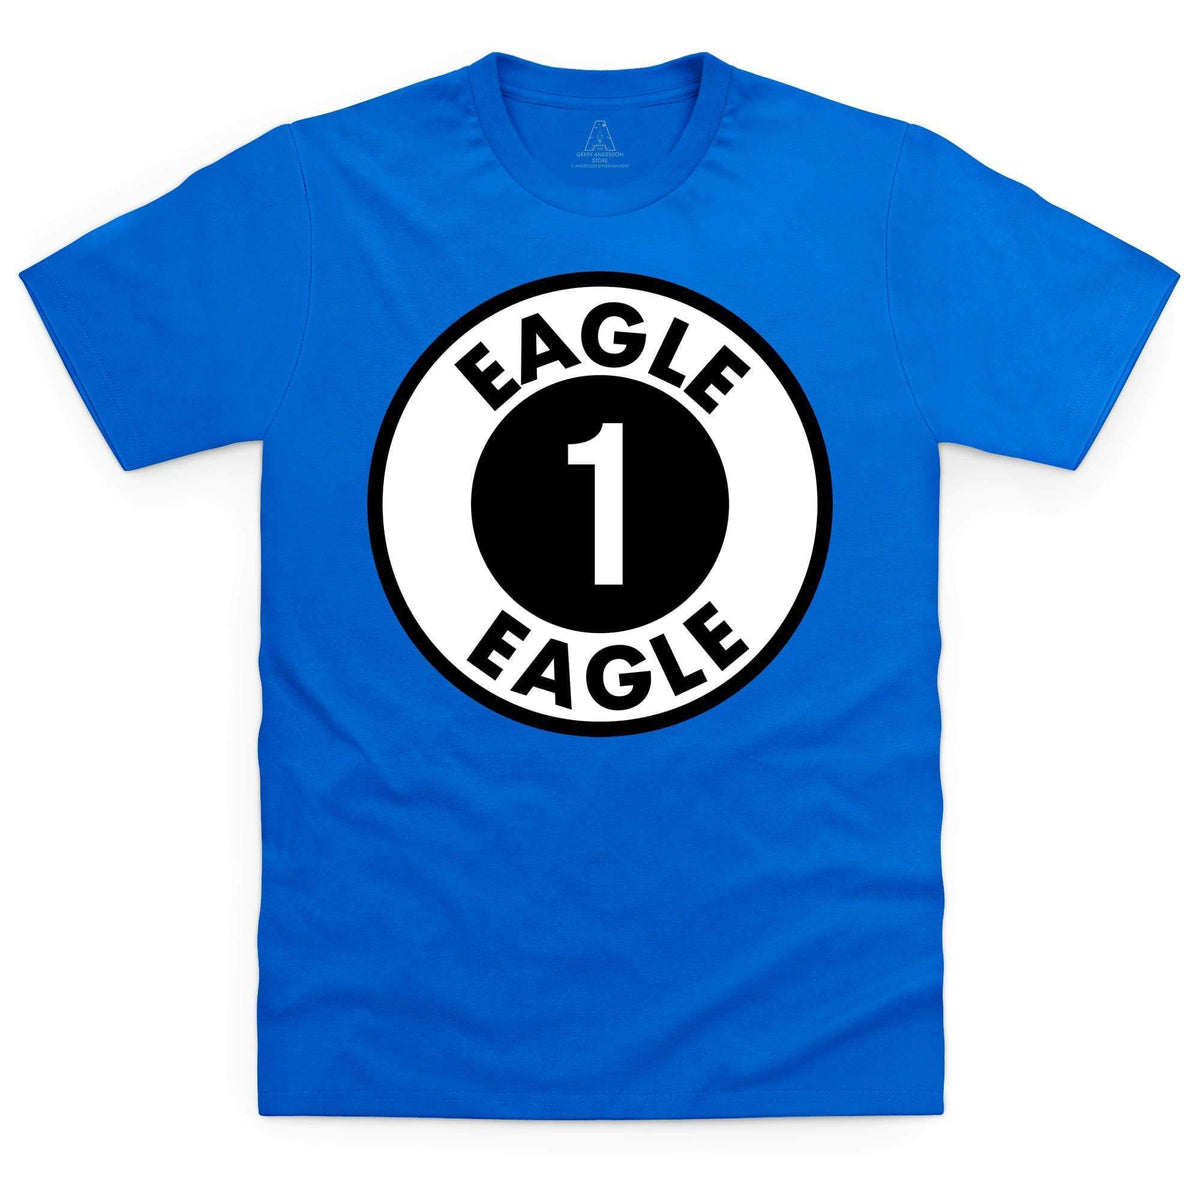 Eagle One Logo Kid's T-shirt - The Gerry Anderson Store